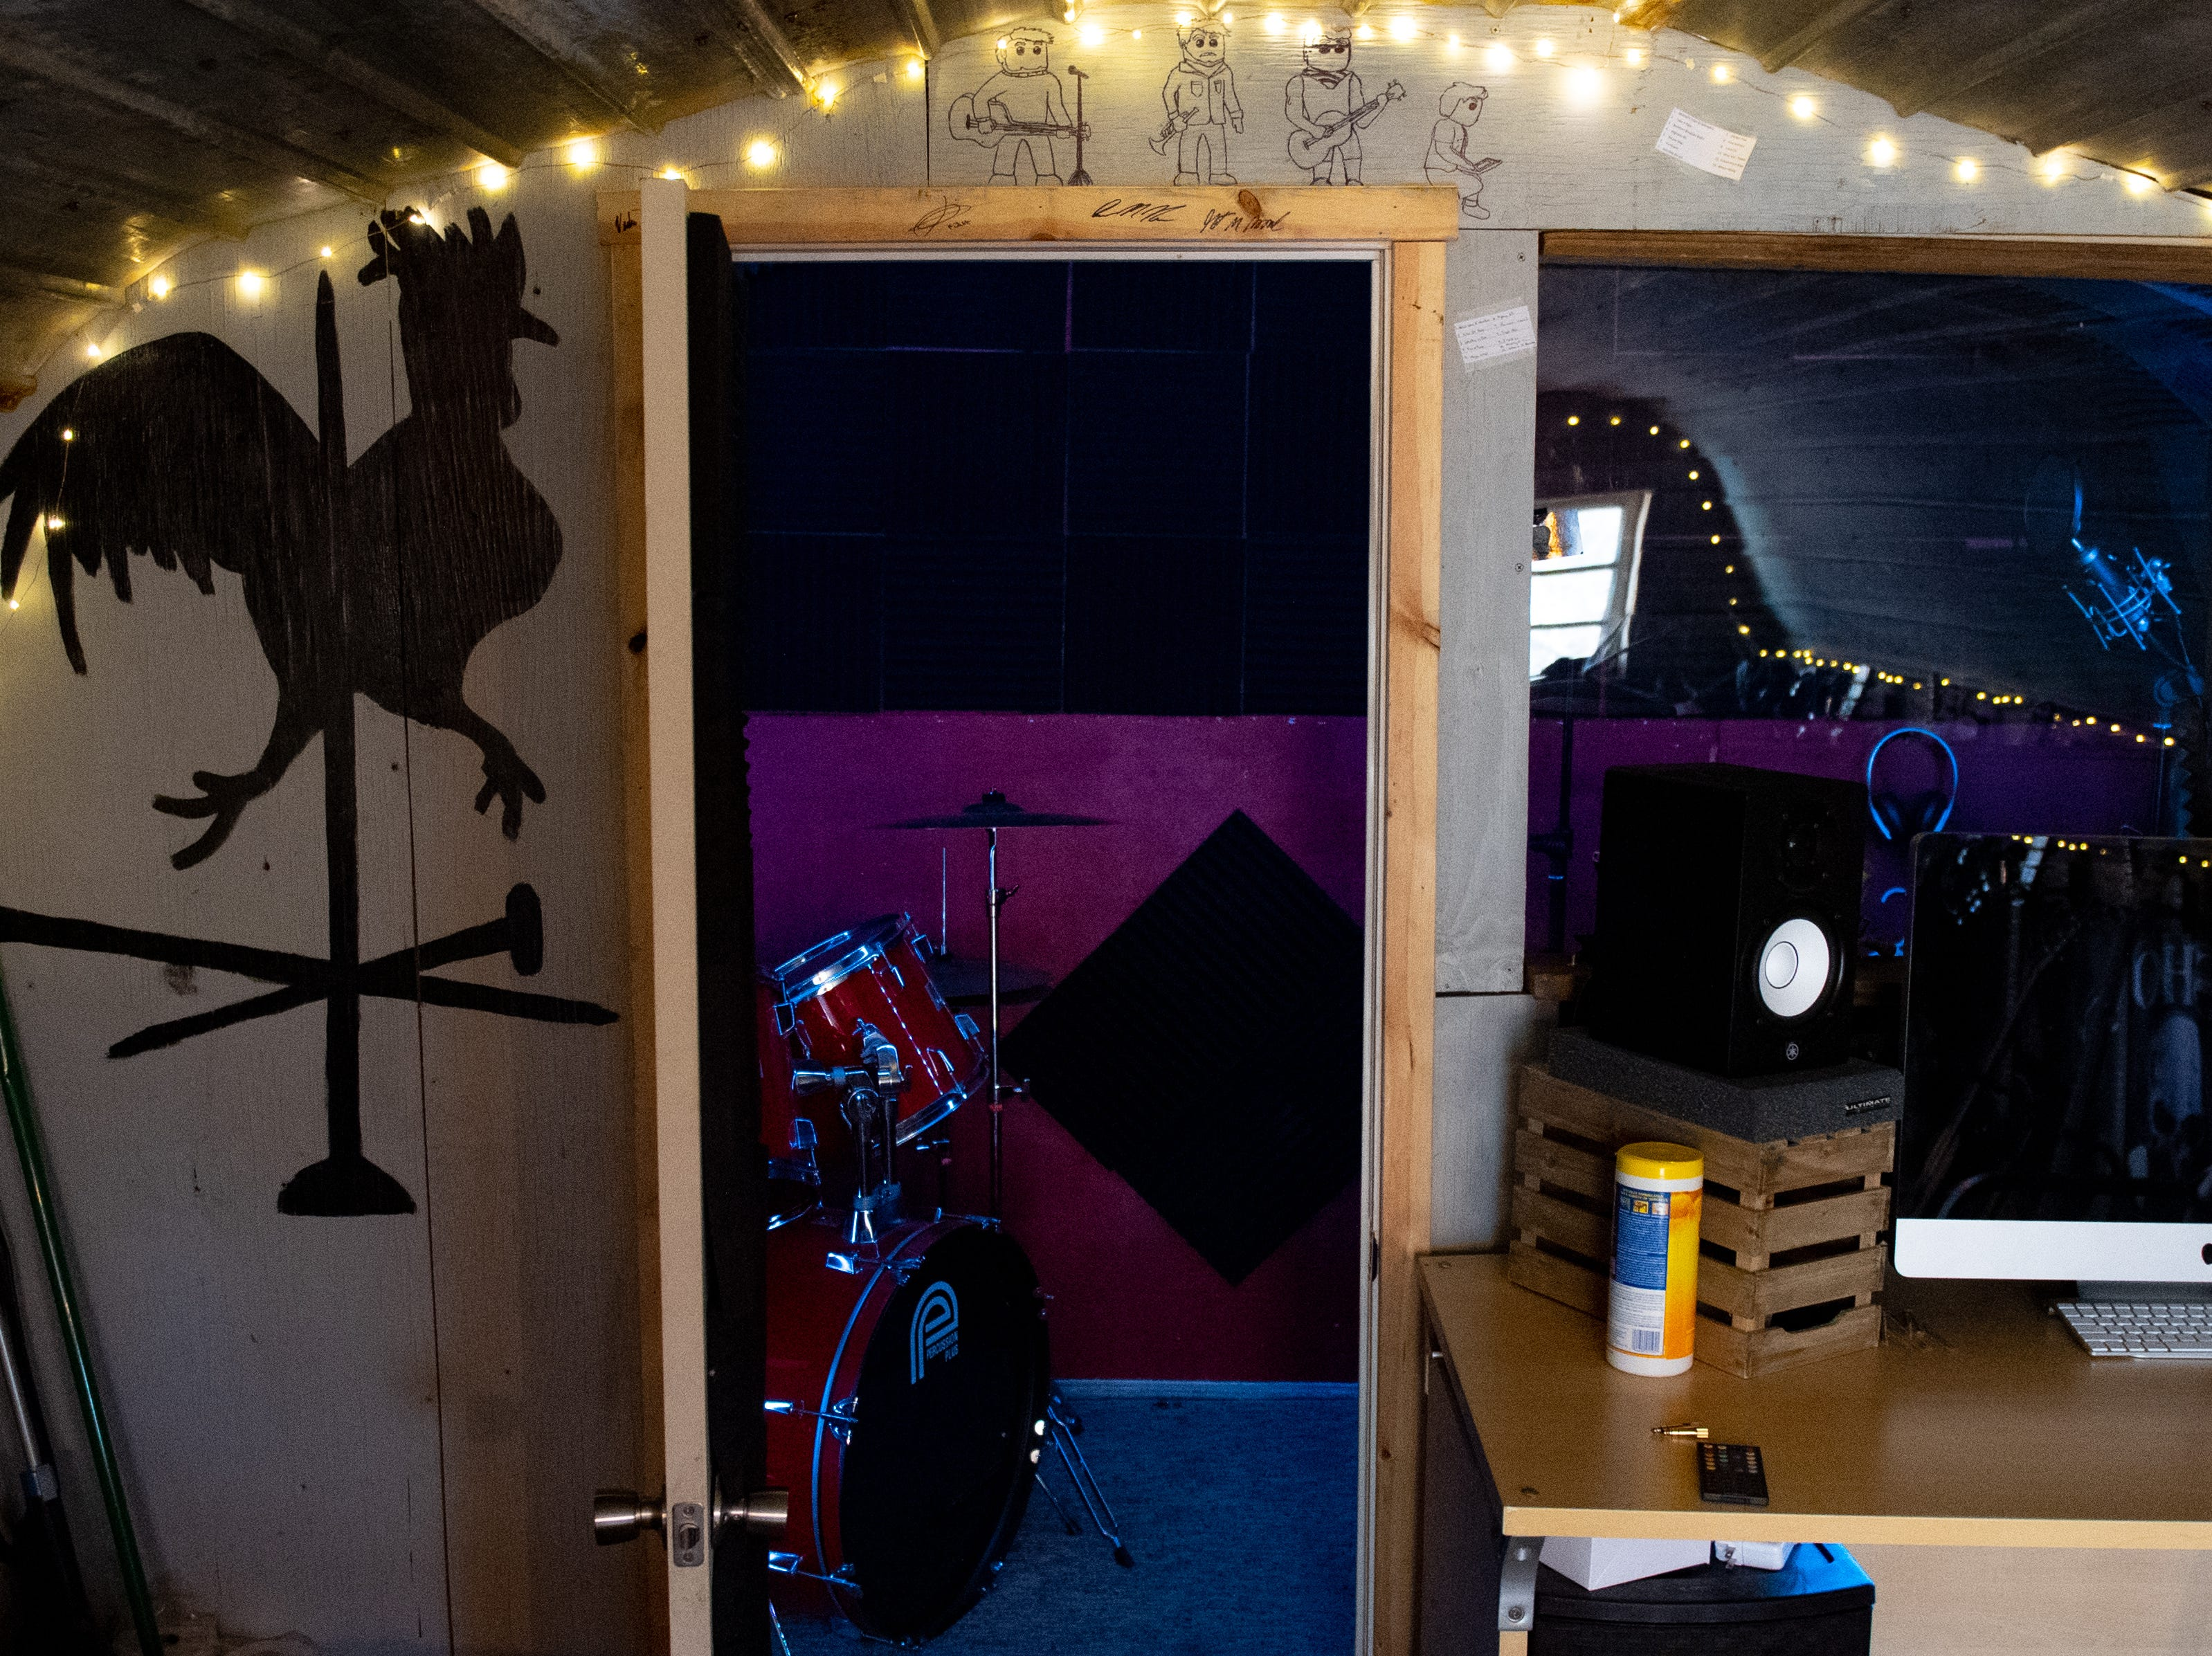 """Jake Puliti and three of his friends have enough equipment, including a drum set, inside the chicken coop they converted into a recording studio, to jam and record music. Puliti is an """"American Idol"""" hopeful whose audition is scheduled to air March 10."""